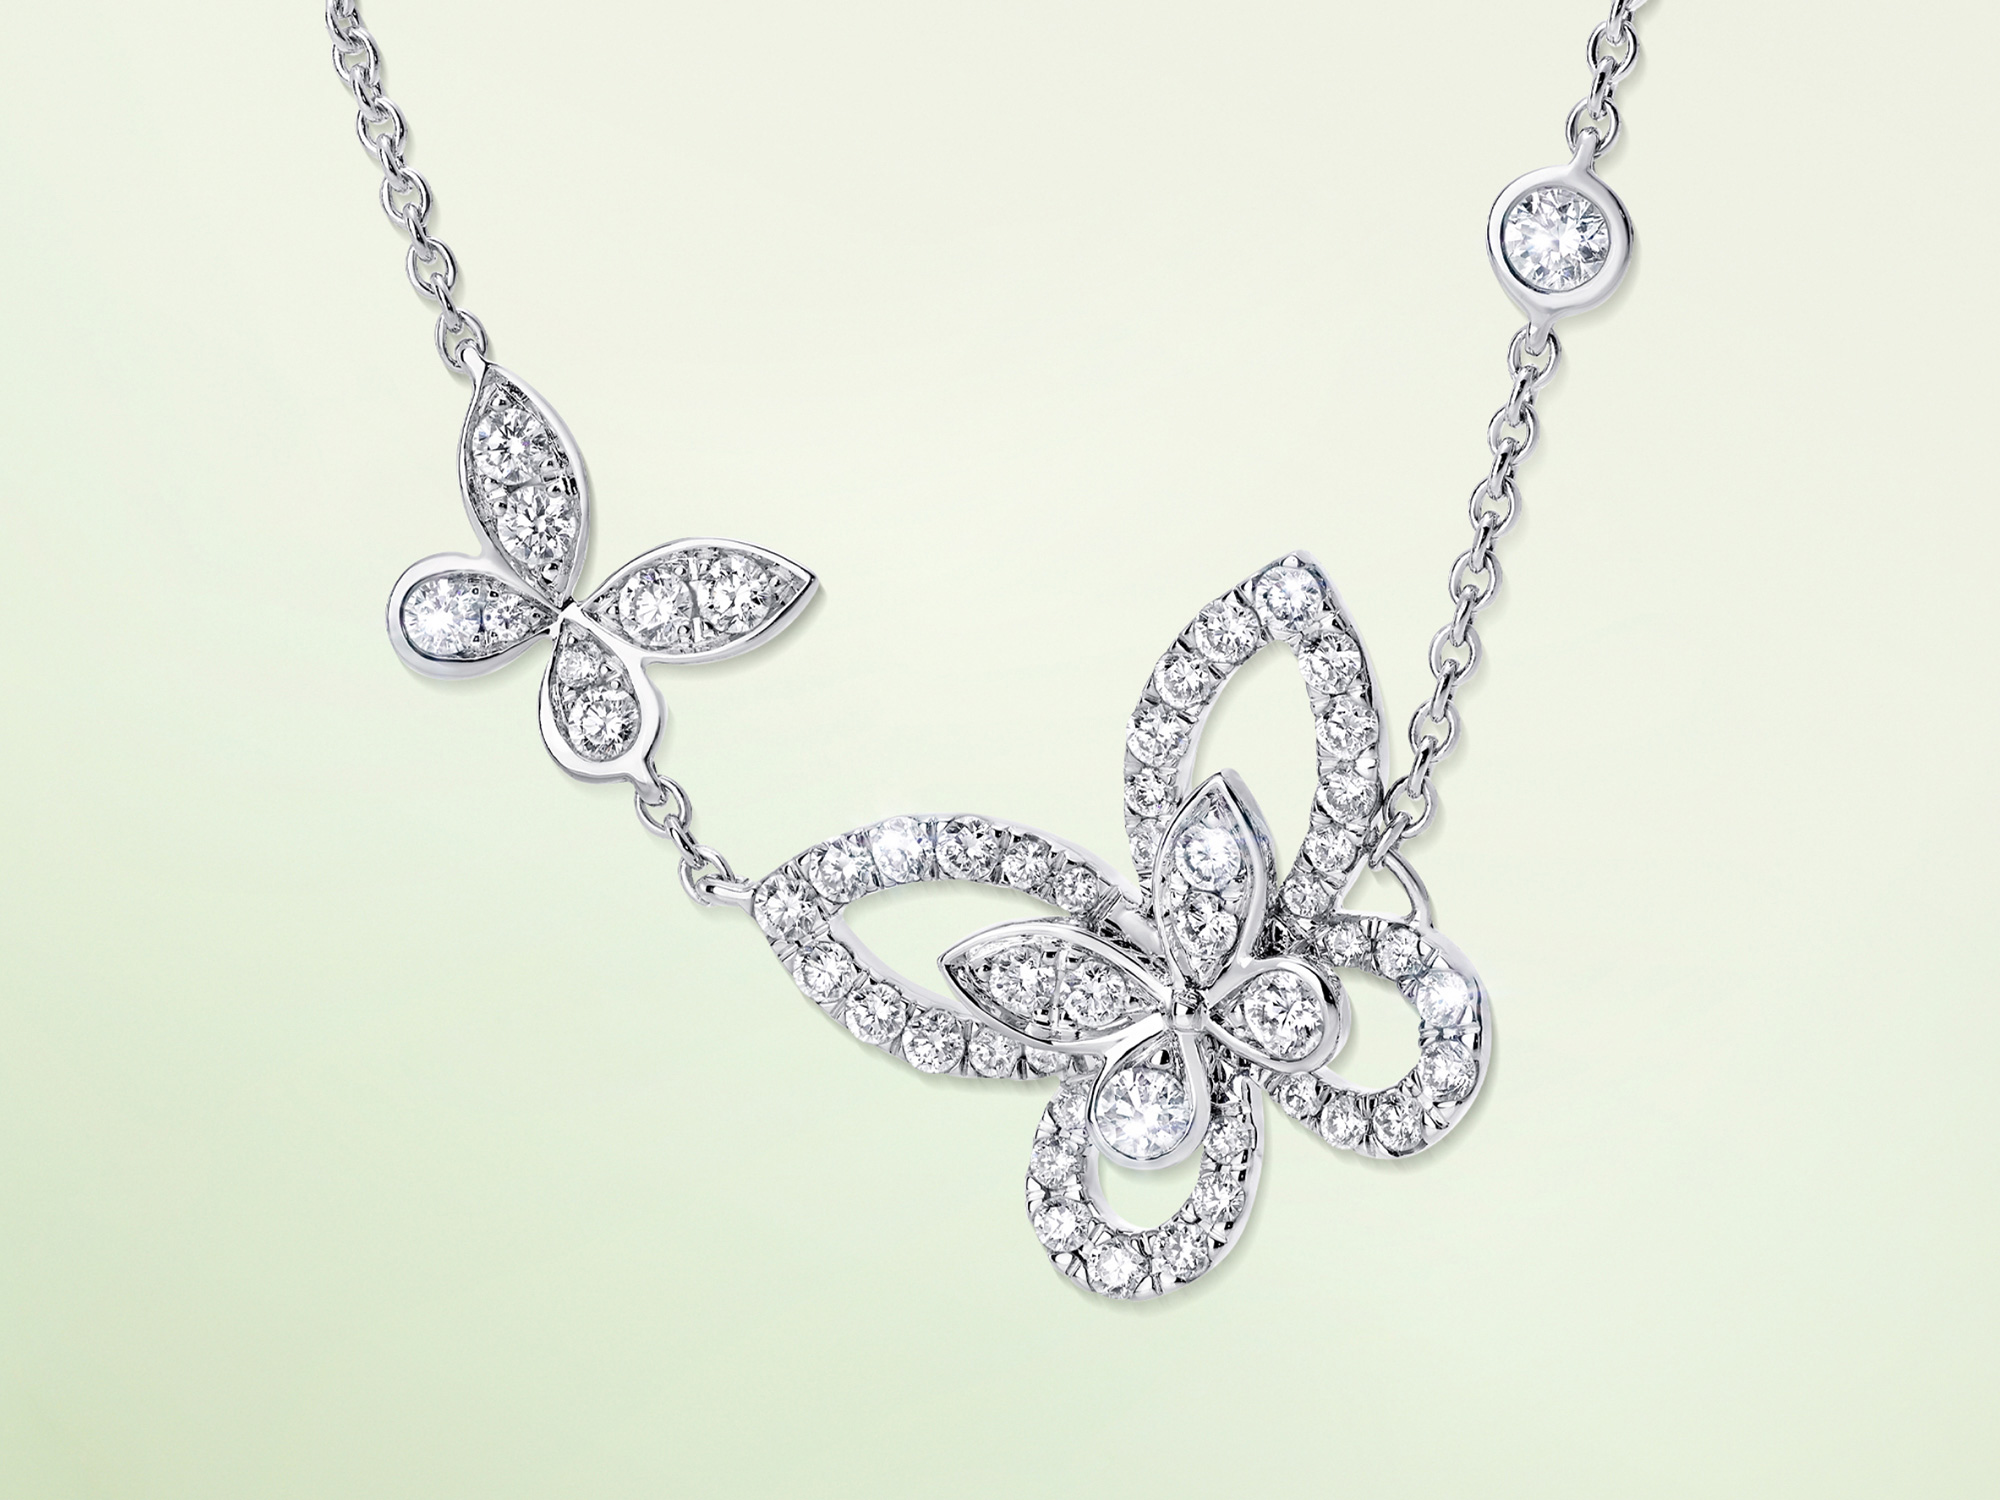 Double Butterfly Silhouette Diamond Pendant from the Graff jewellery collection